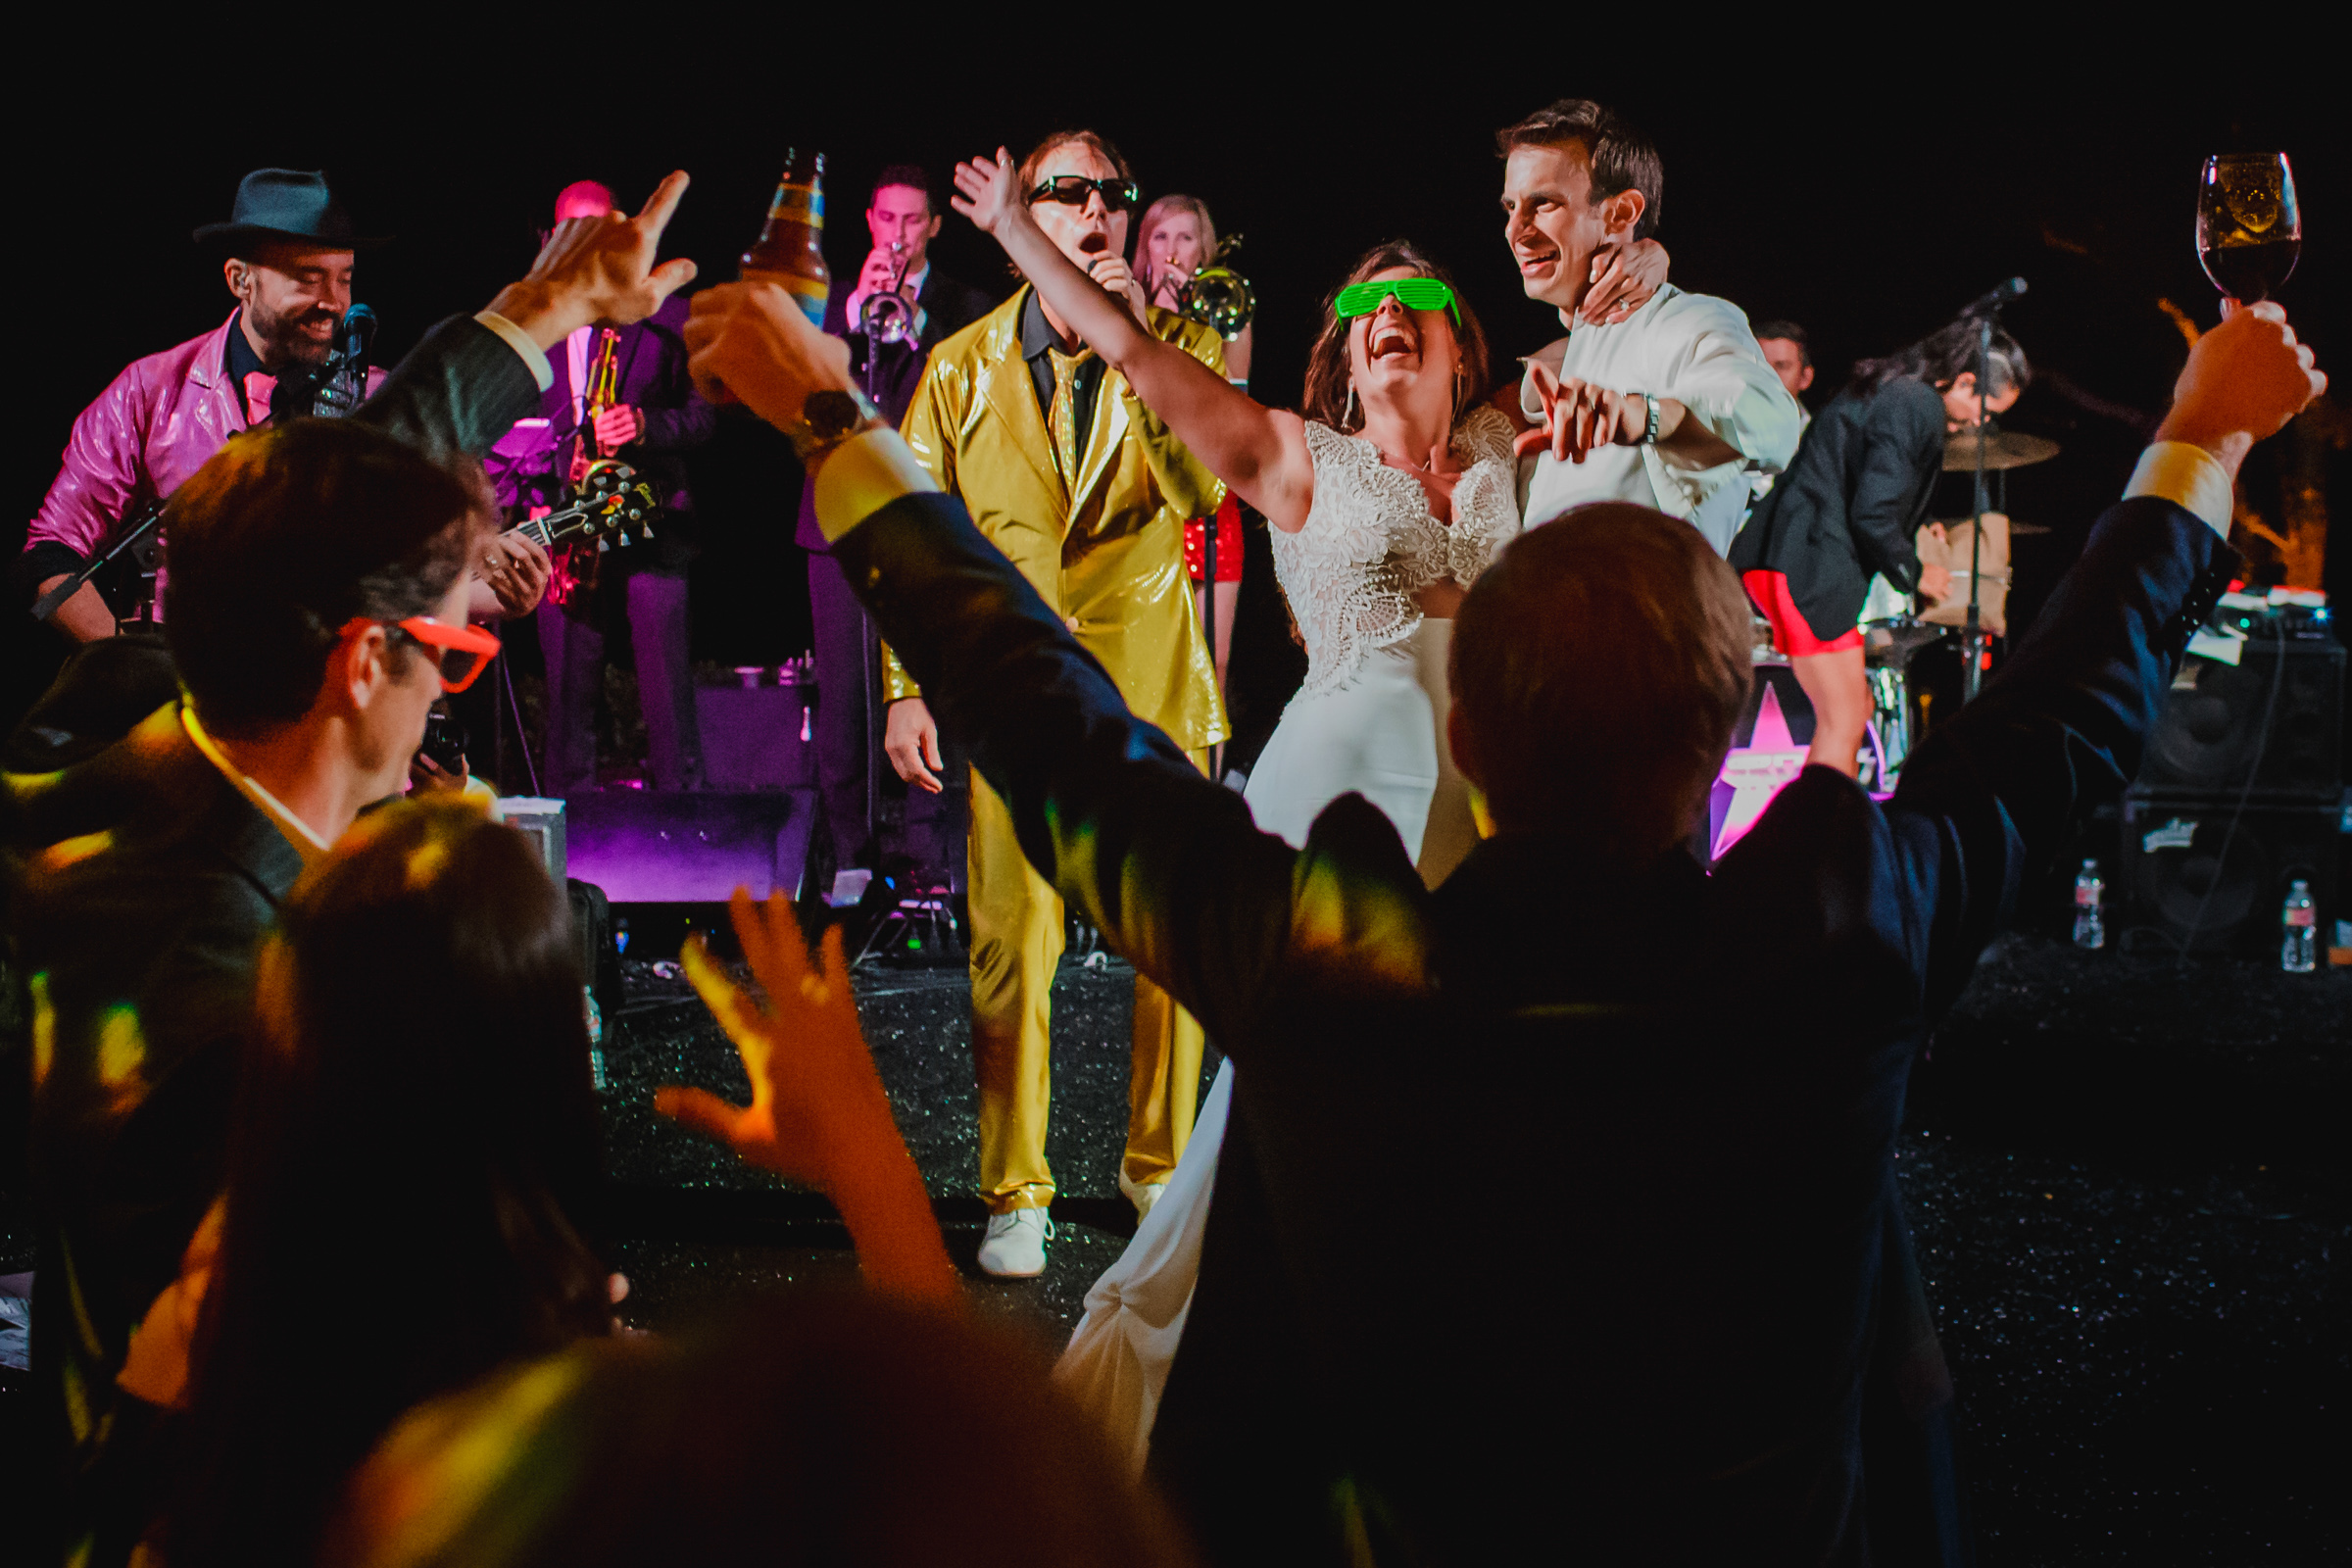 Bride in crazy glasses at dance party- photo by Chrisman Studios